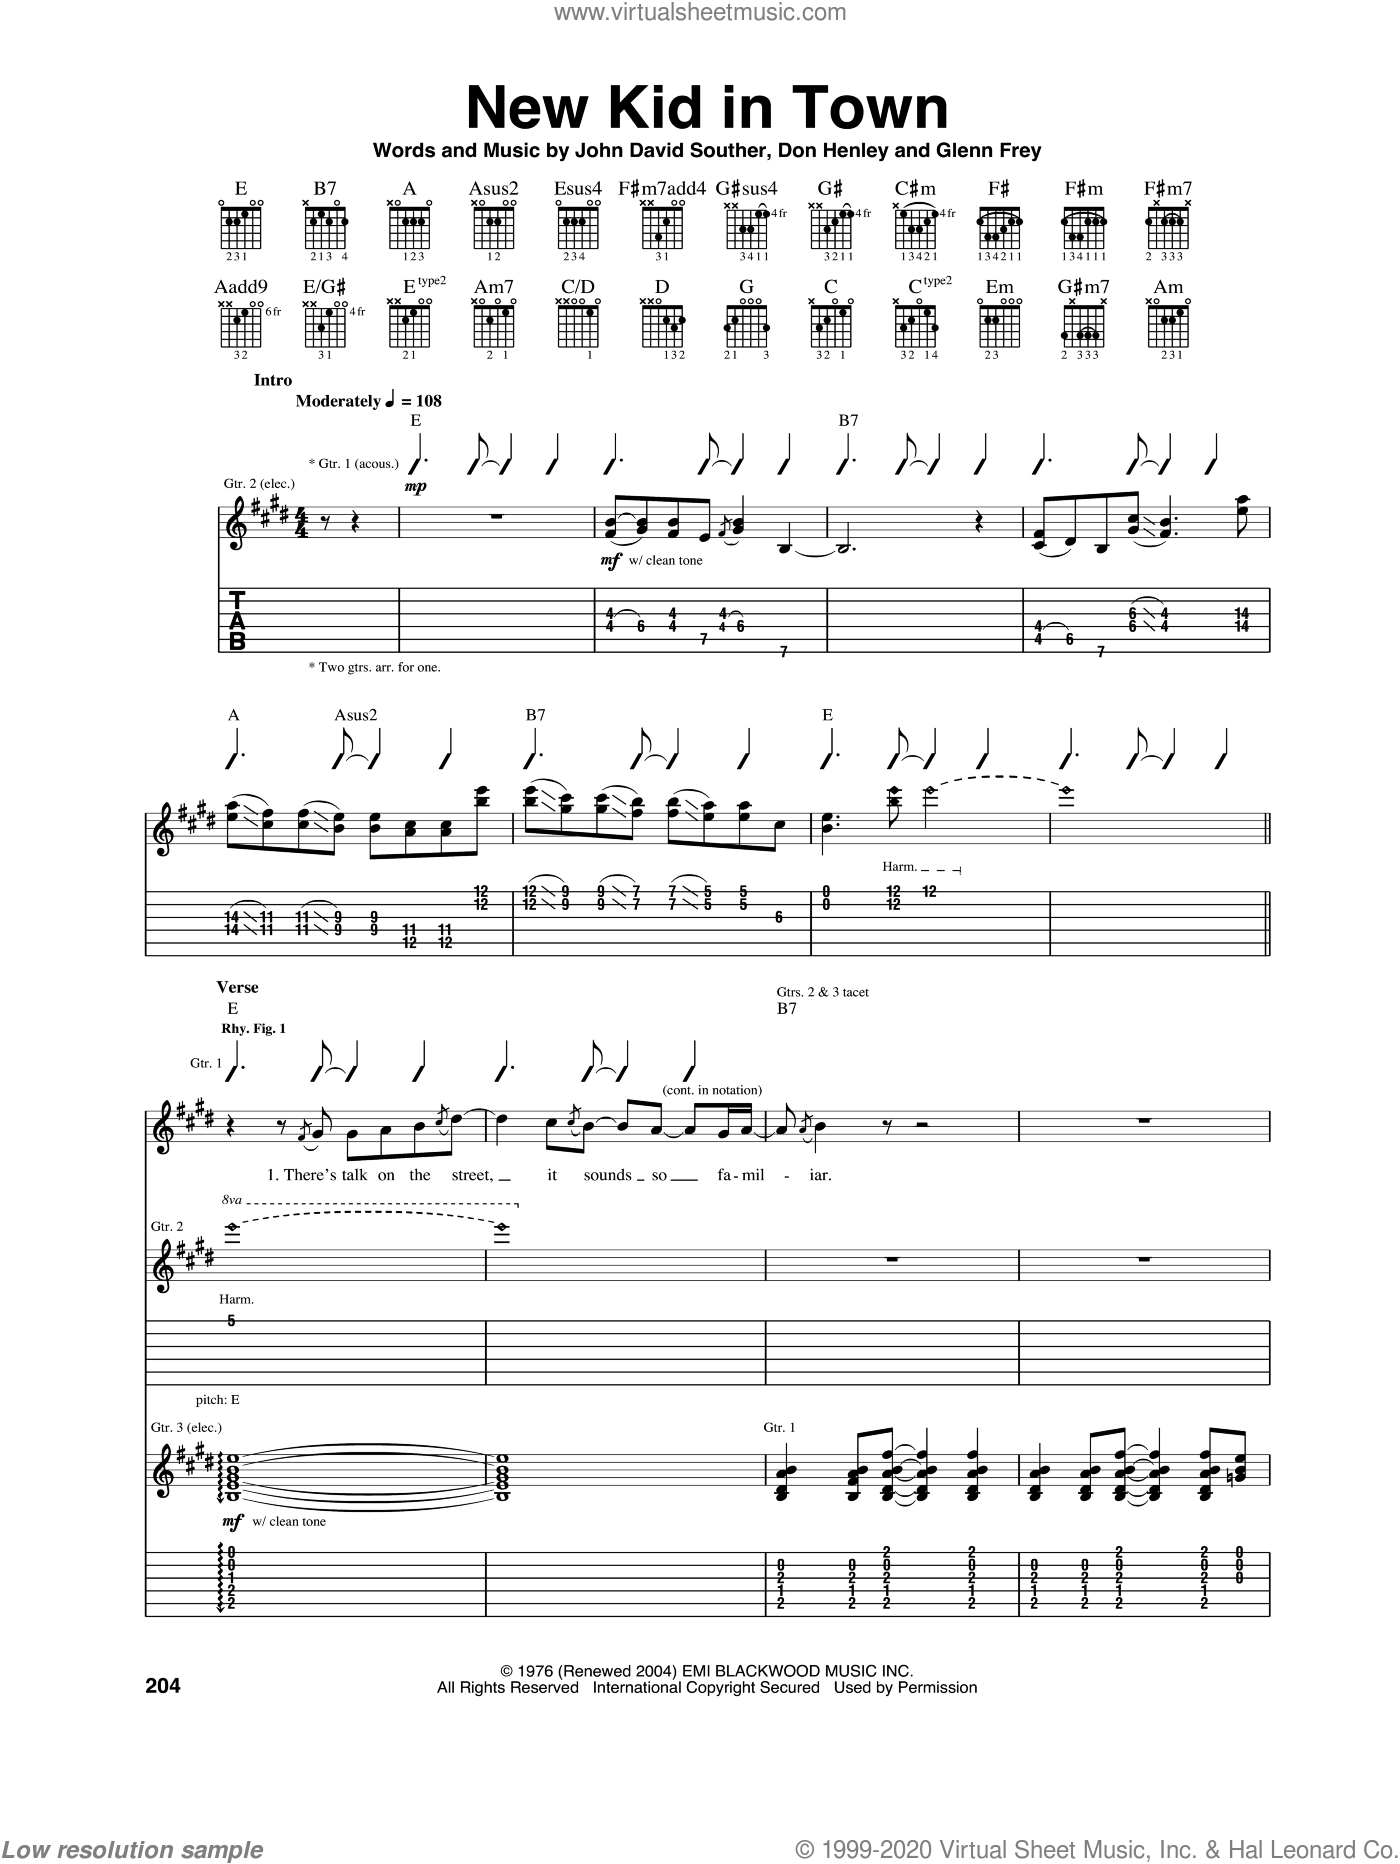 New Kid In Town sheet music for guitar (tablature) by John David Souther, Eagles, Don Henley and Glenn Frey